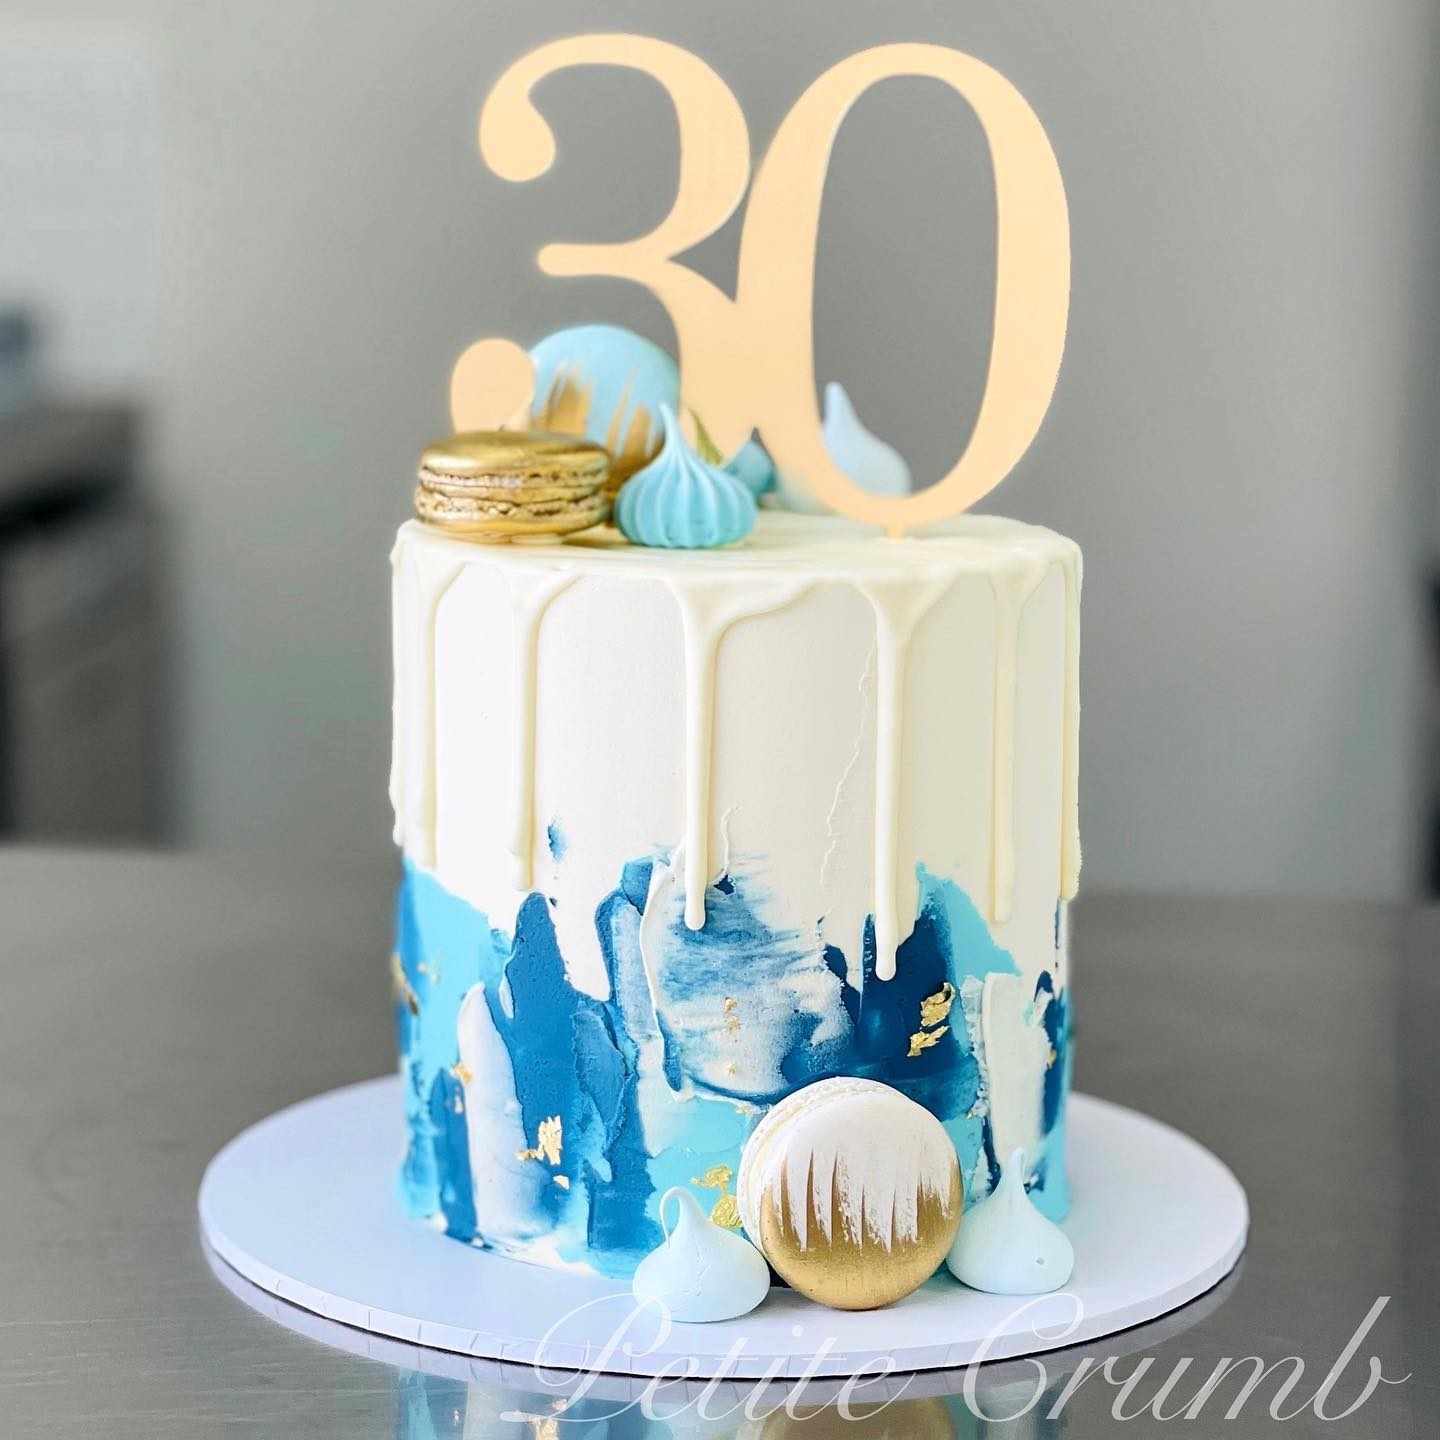 Textured blue base with white chocolate drip